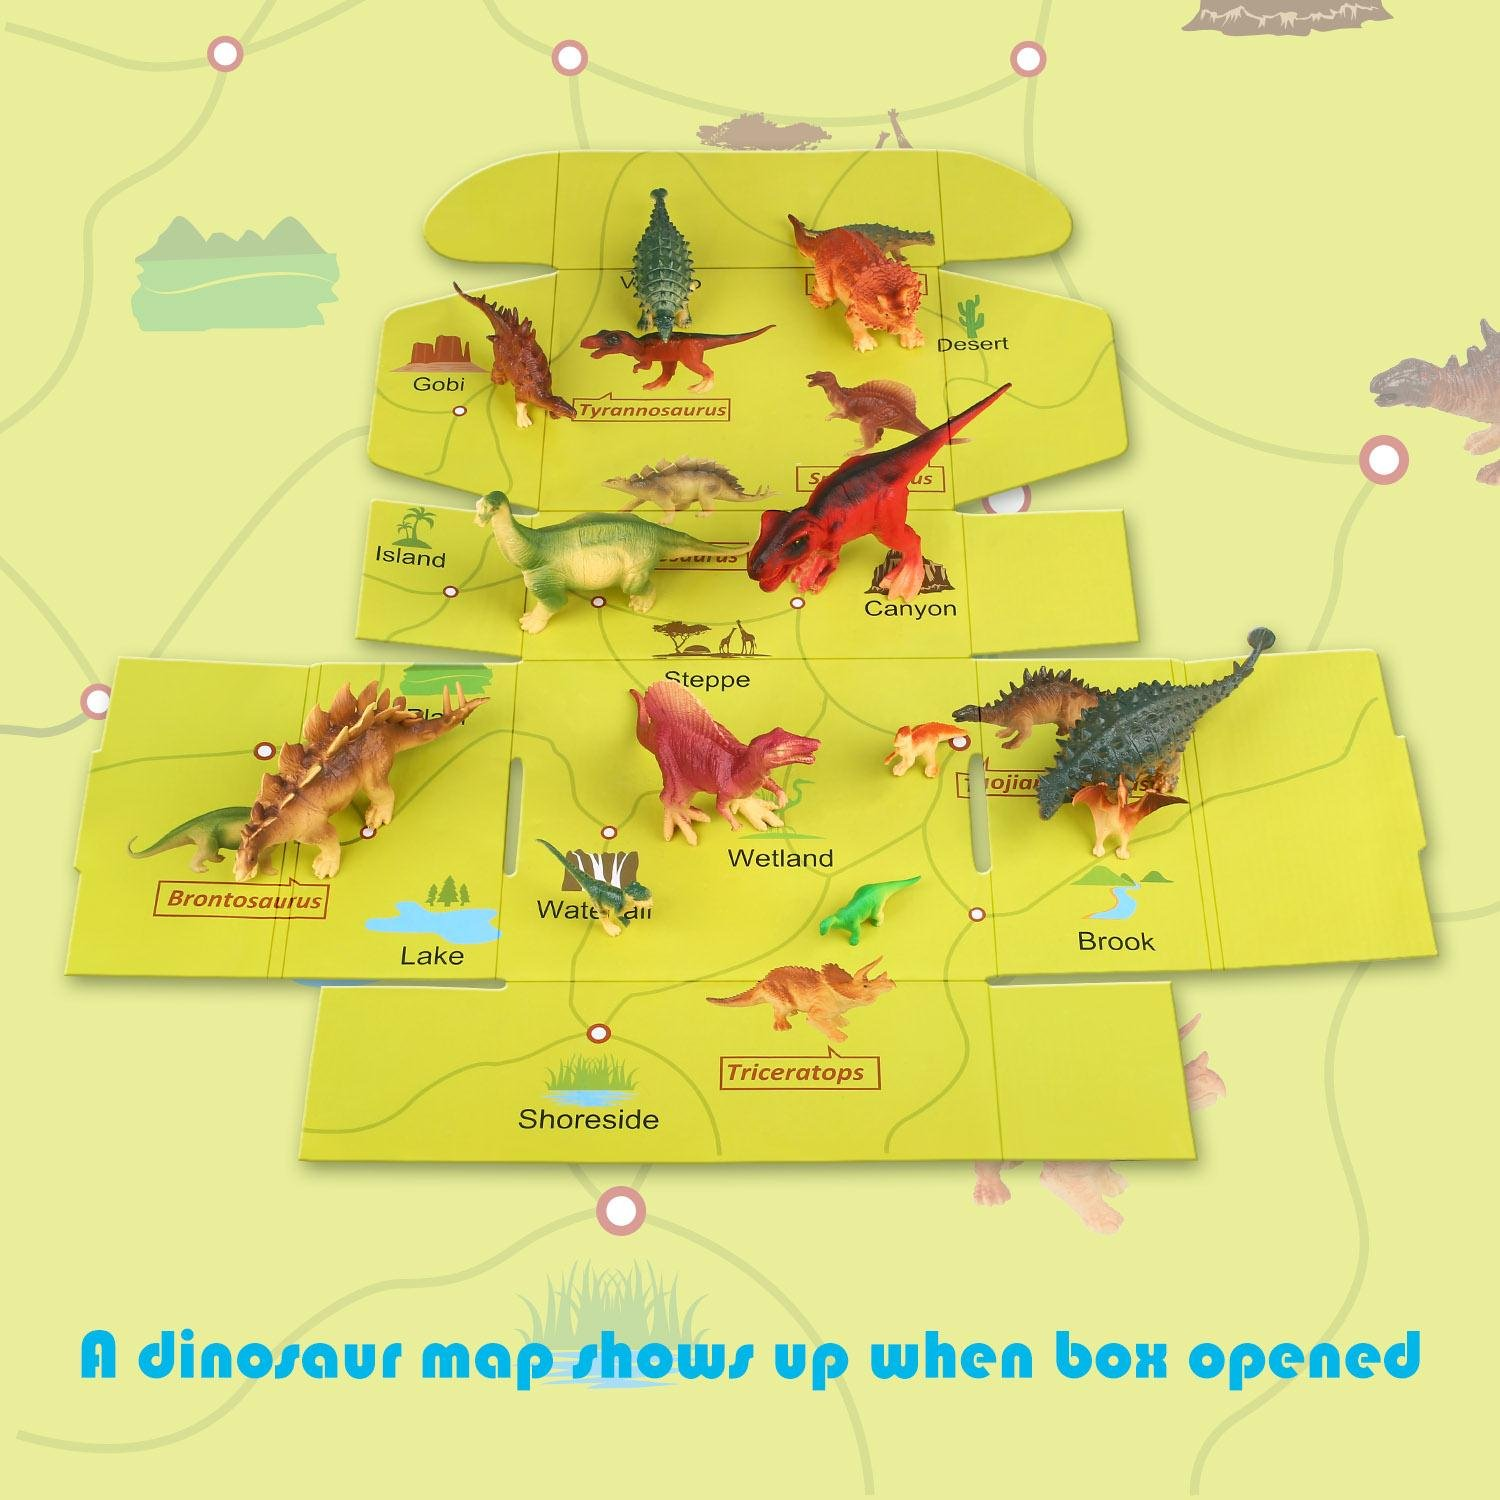 Dinosaurs Toys Assorted Figures Plastic Family Animal Set with T-Rex, Stegosaurus, Triceratops, Maps and others Eggs Pack of 16 by Peradix